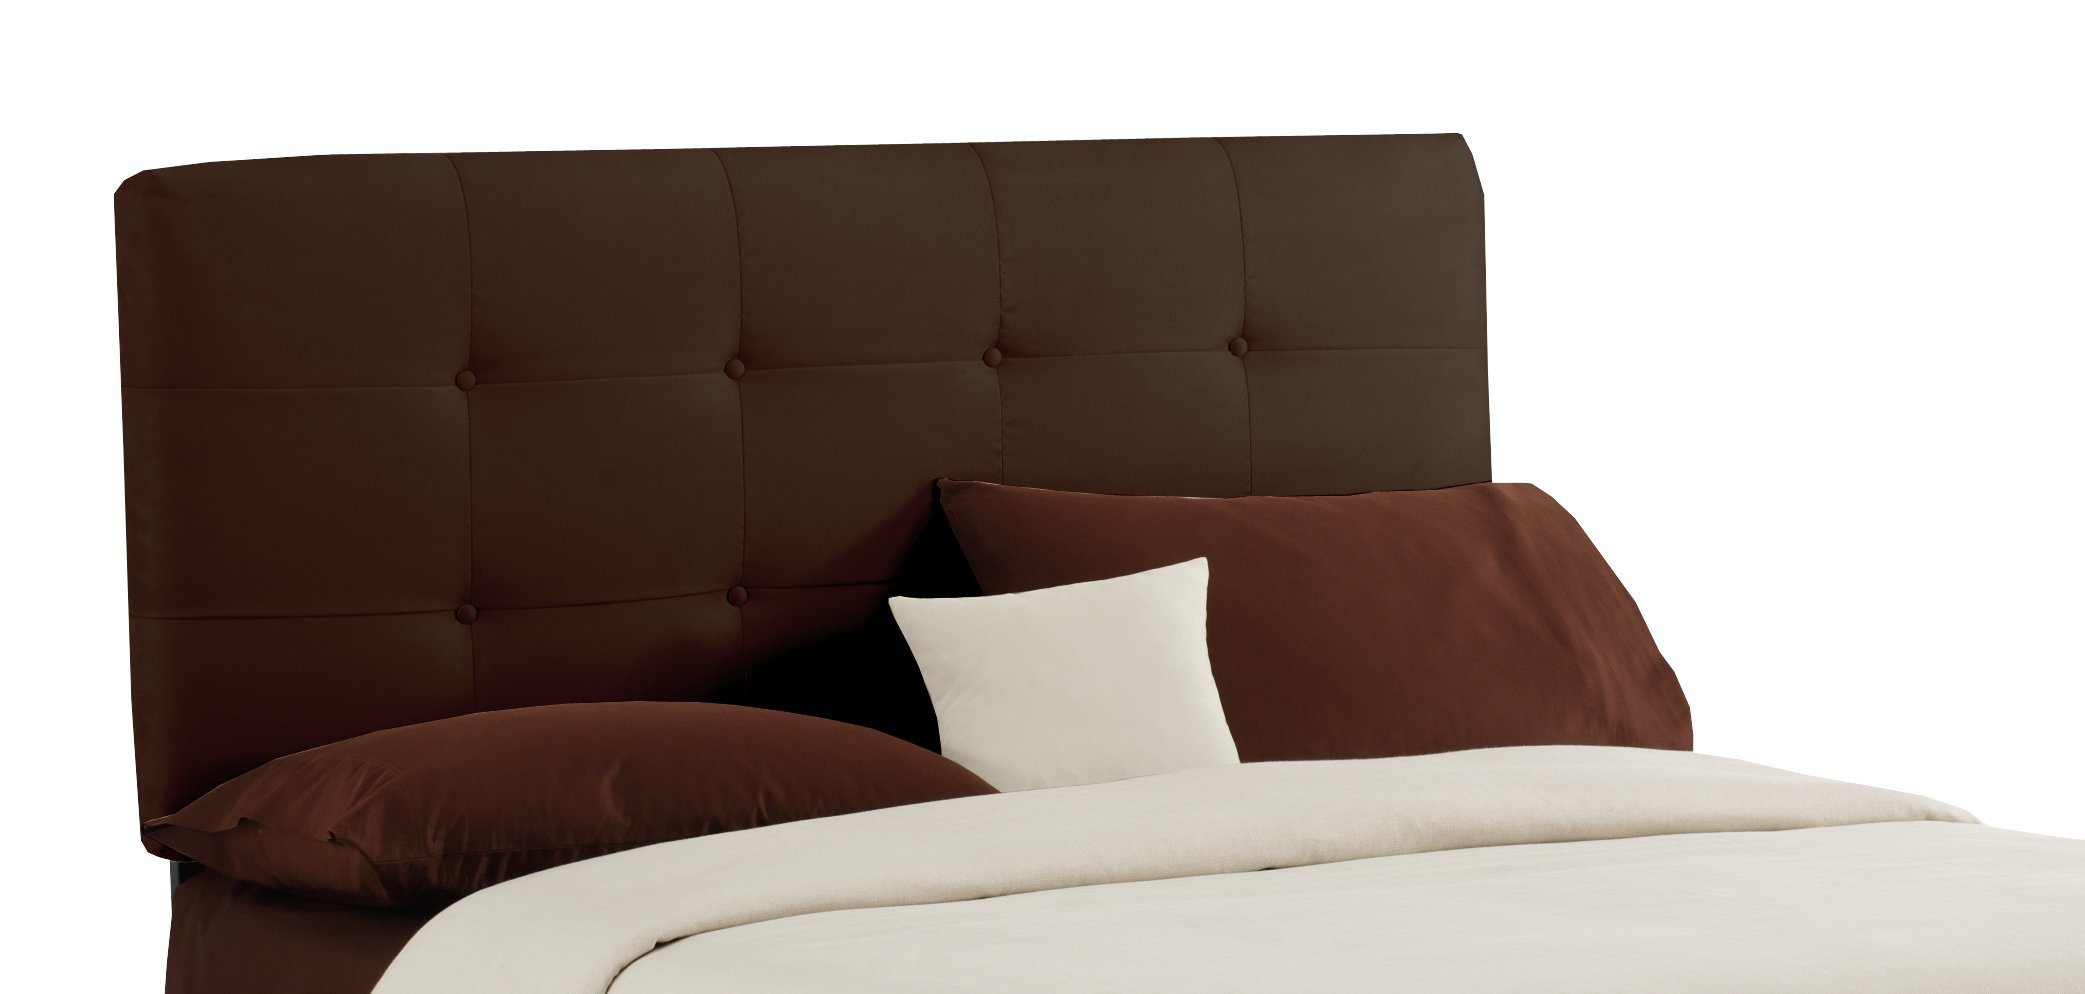 Skyline Furniture Surrey Queen Micro-Suede-Upholstered Tufted Headboard, Chocolate